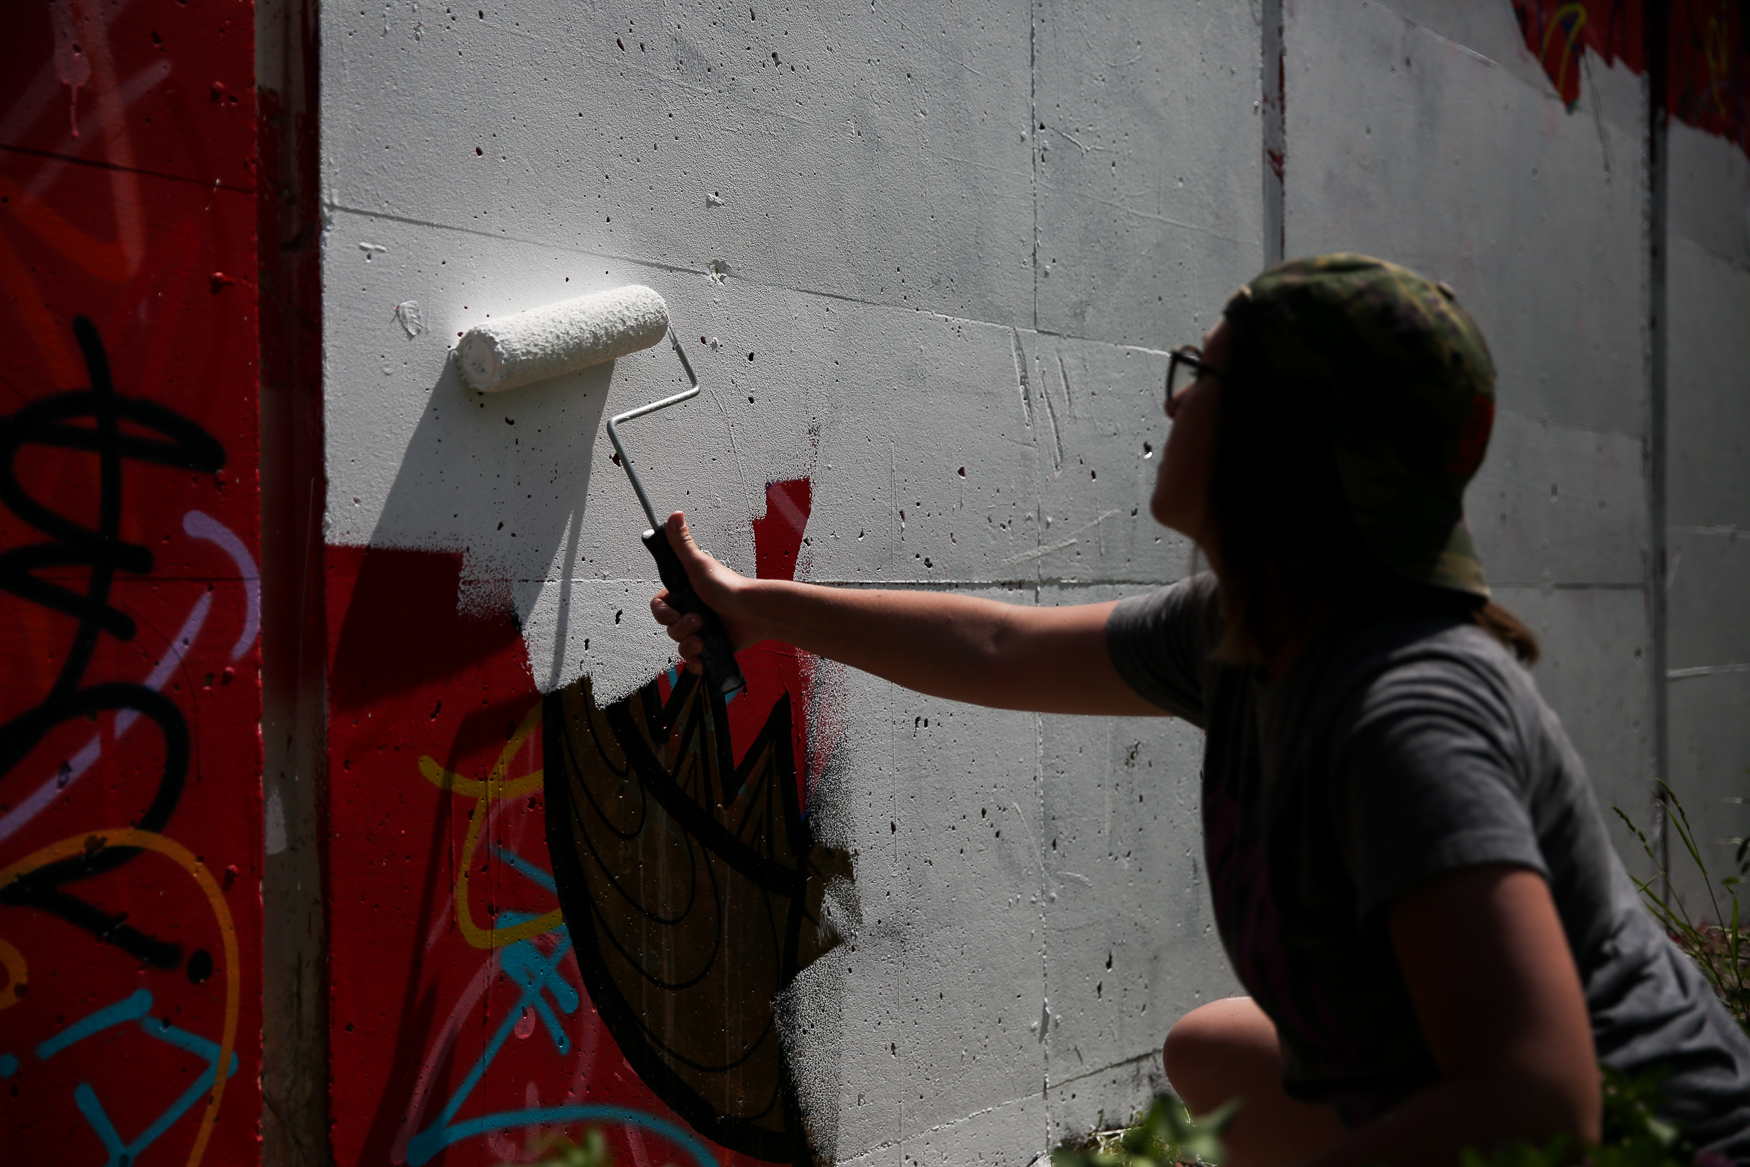 Sarah Jamison, a local artist, works on her mural on the MBT trail. (Amanda Andrade-Rhoades/DC Refined)